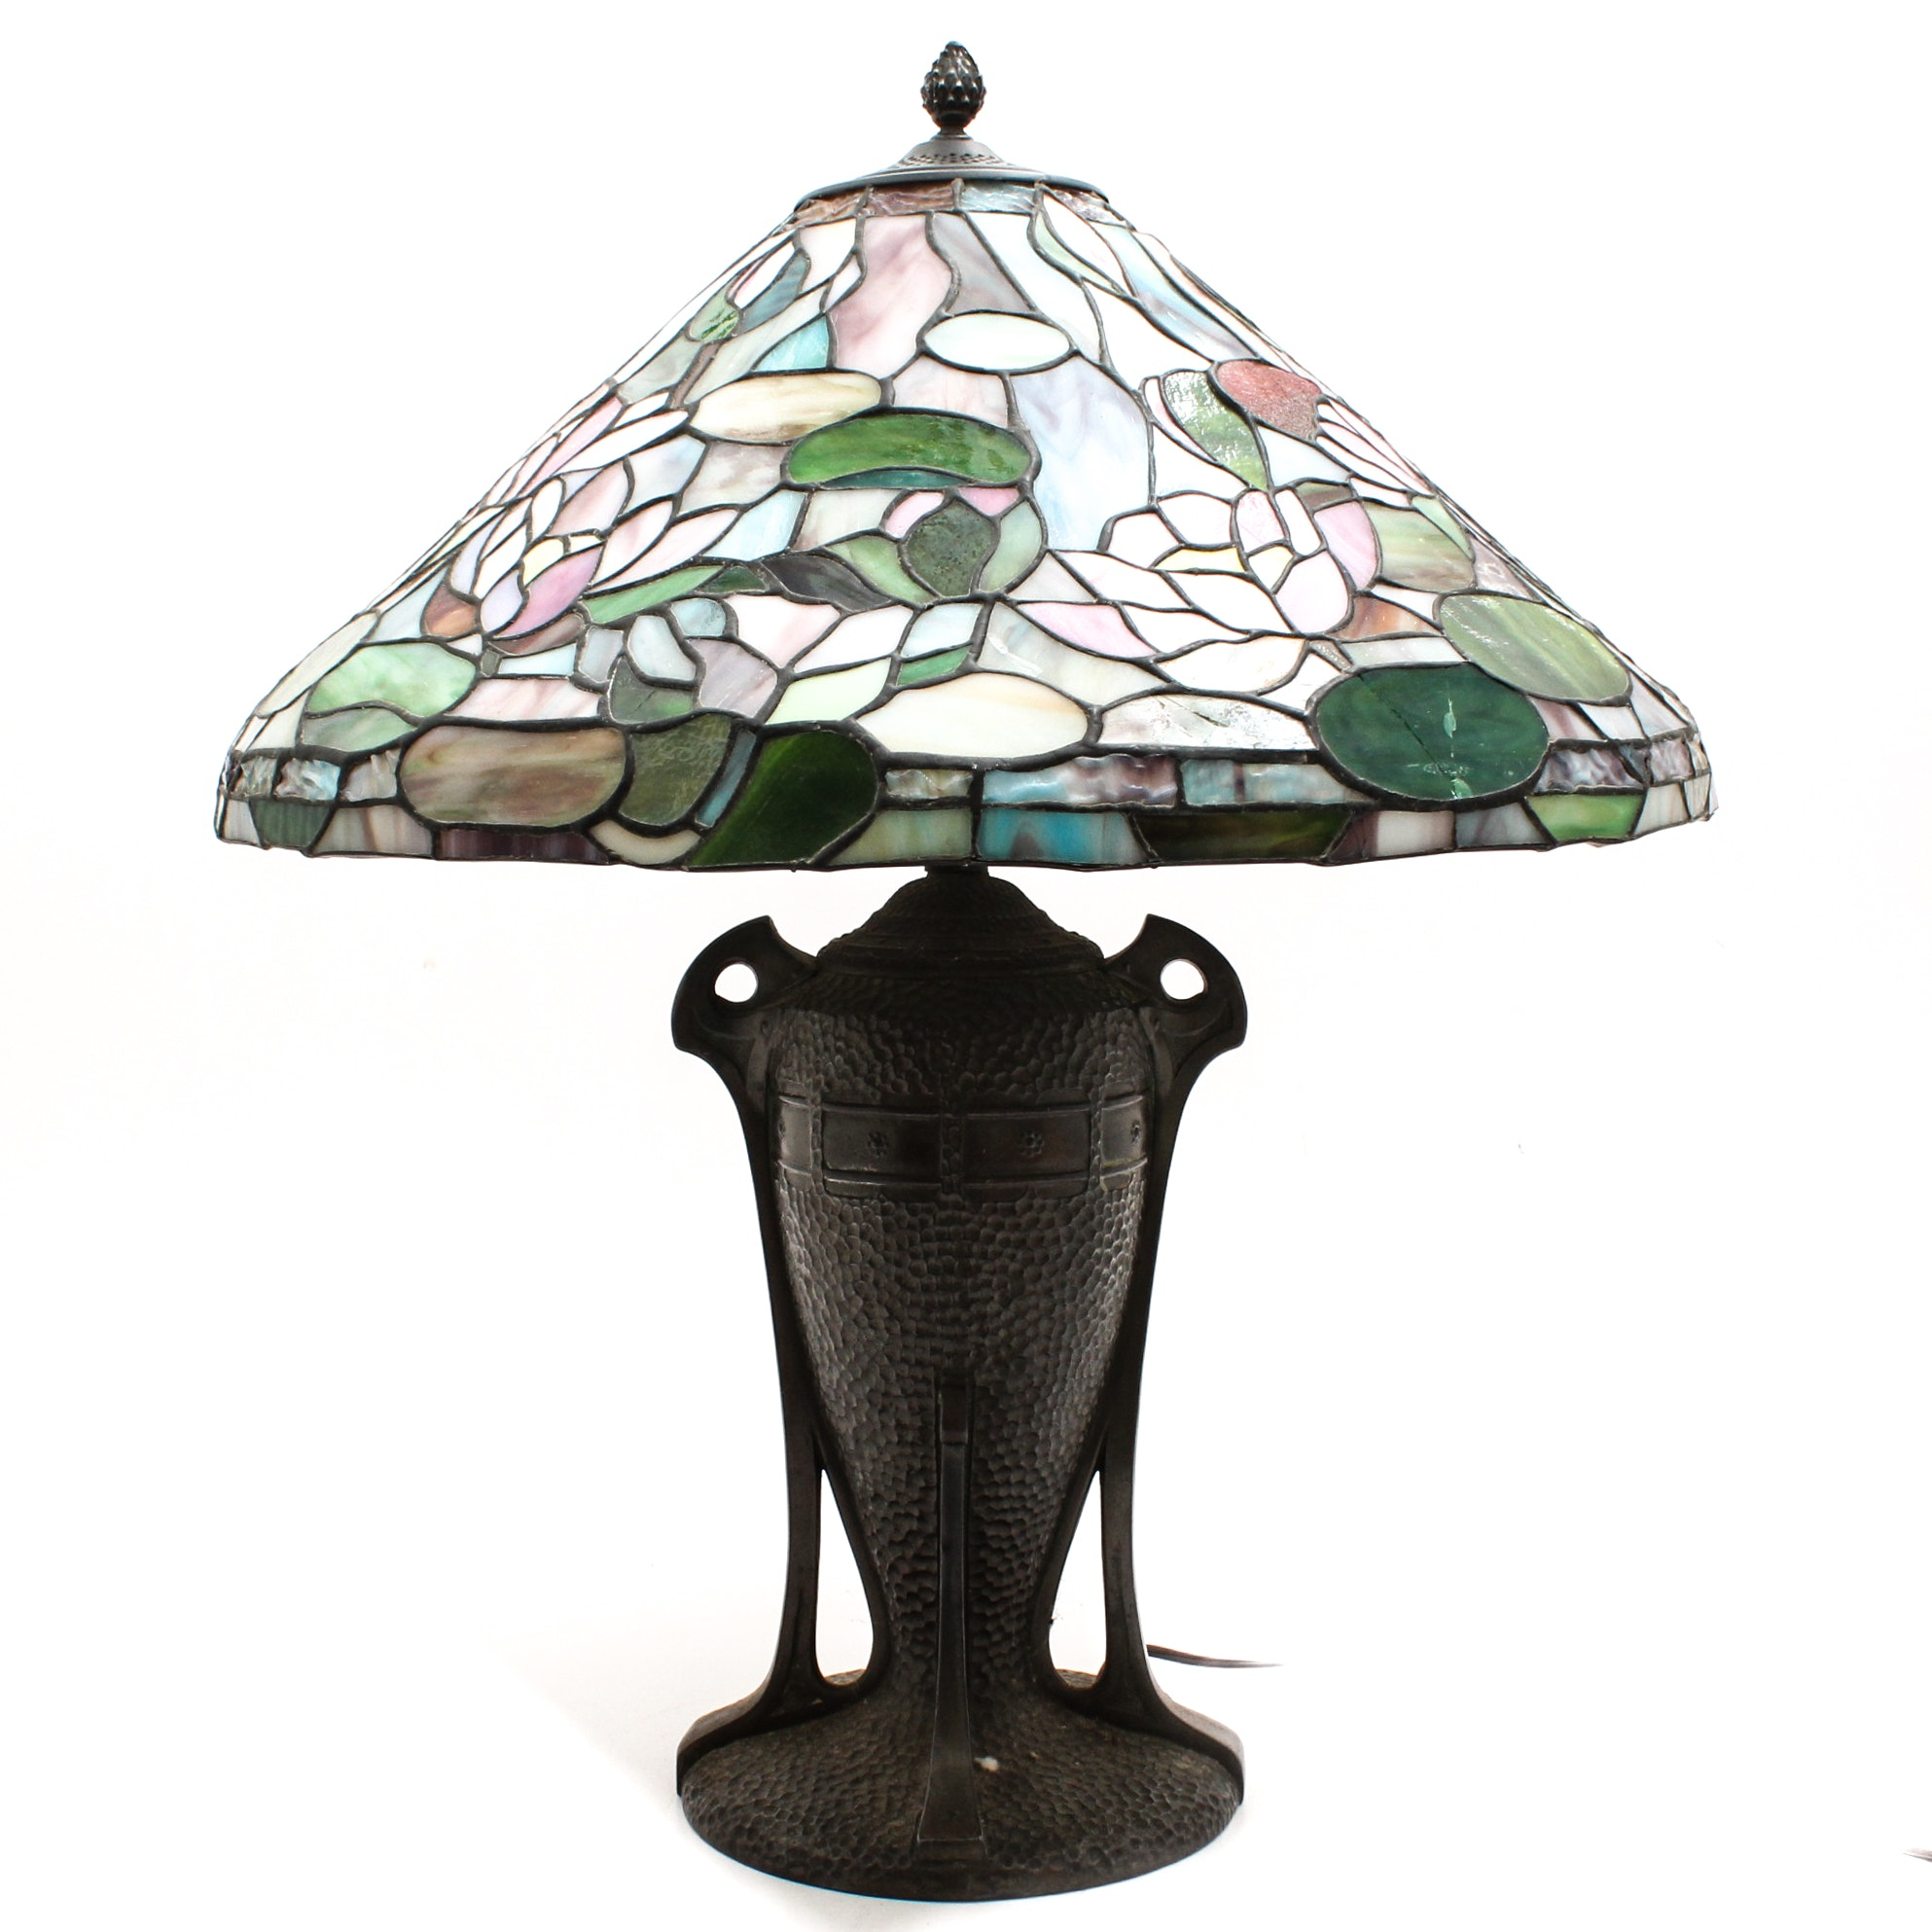 Tiffany Style Lamp with Waterlily Stained Glass Shade